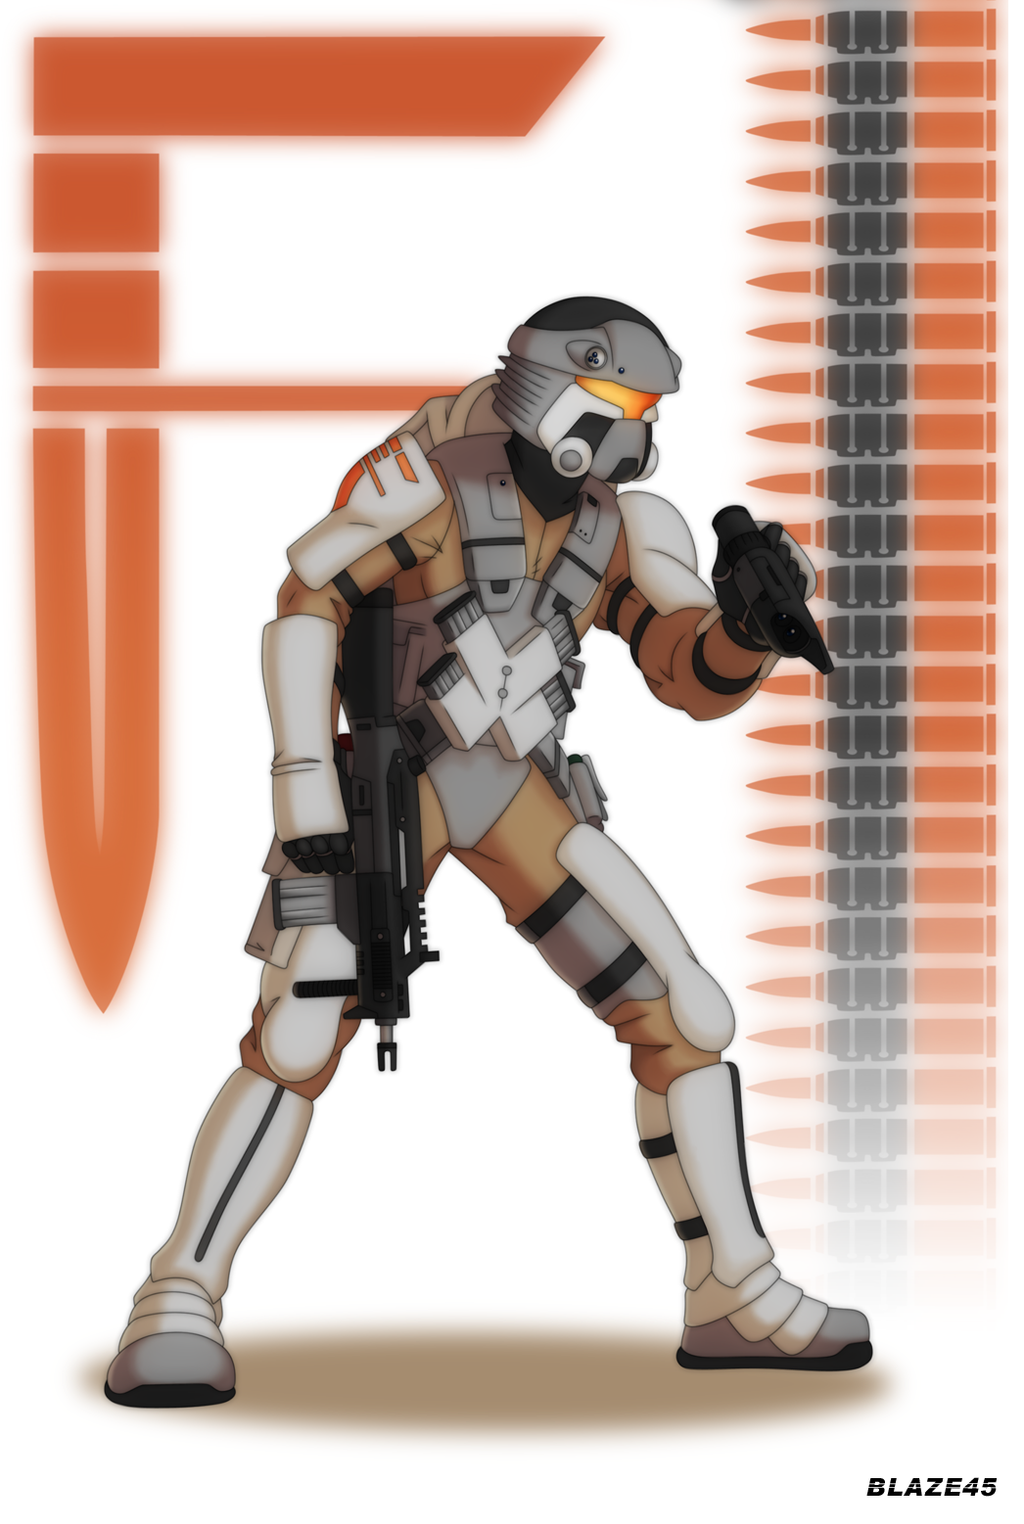 Foster Corp Standard Soldier Blaze 45 version by deadpoolthesecond